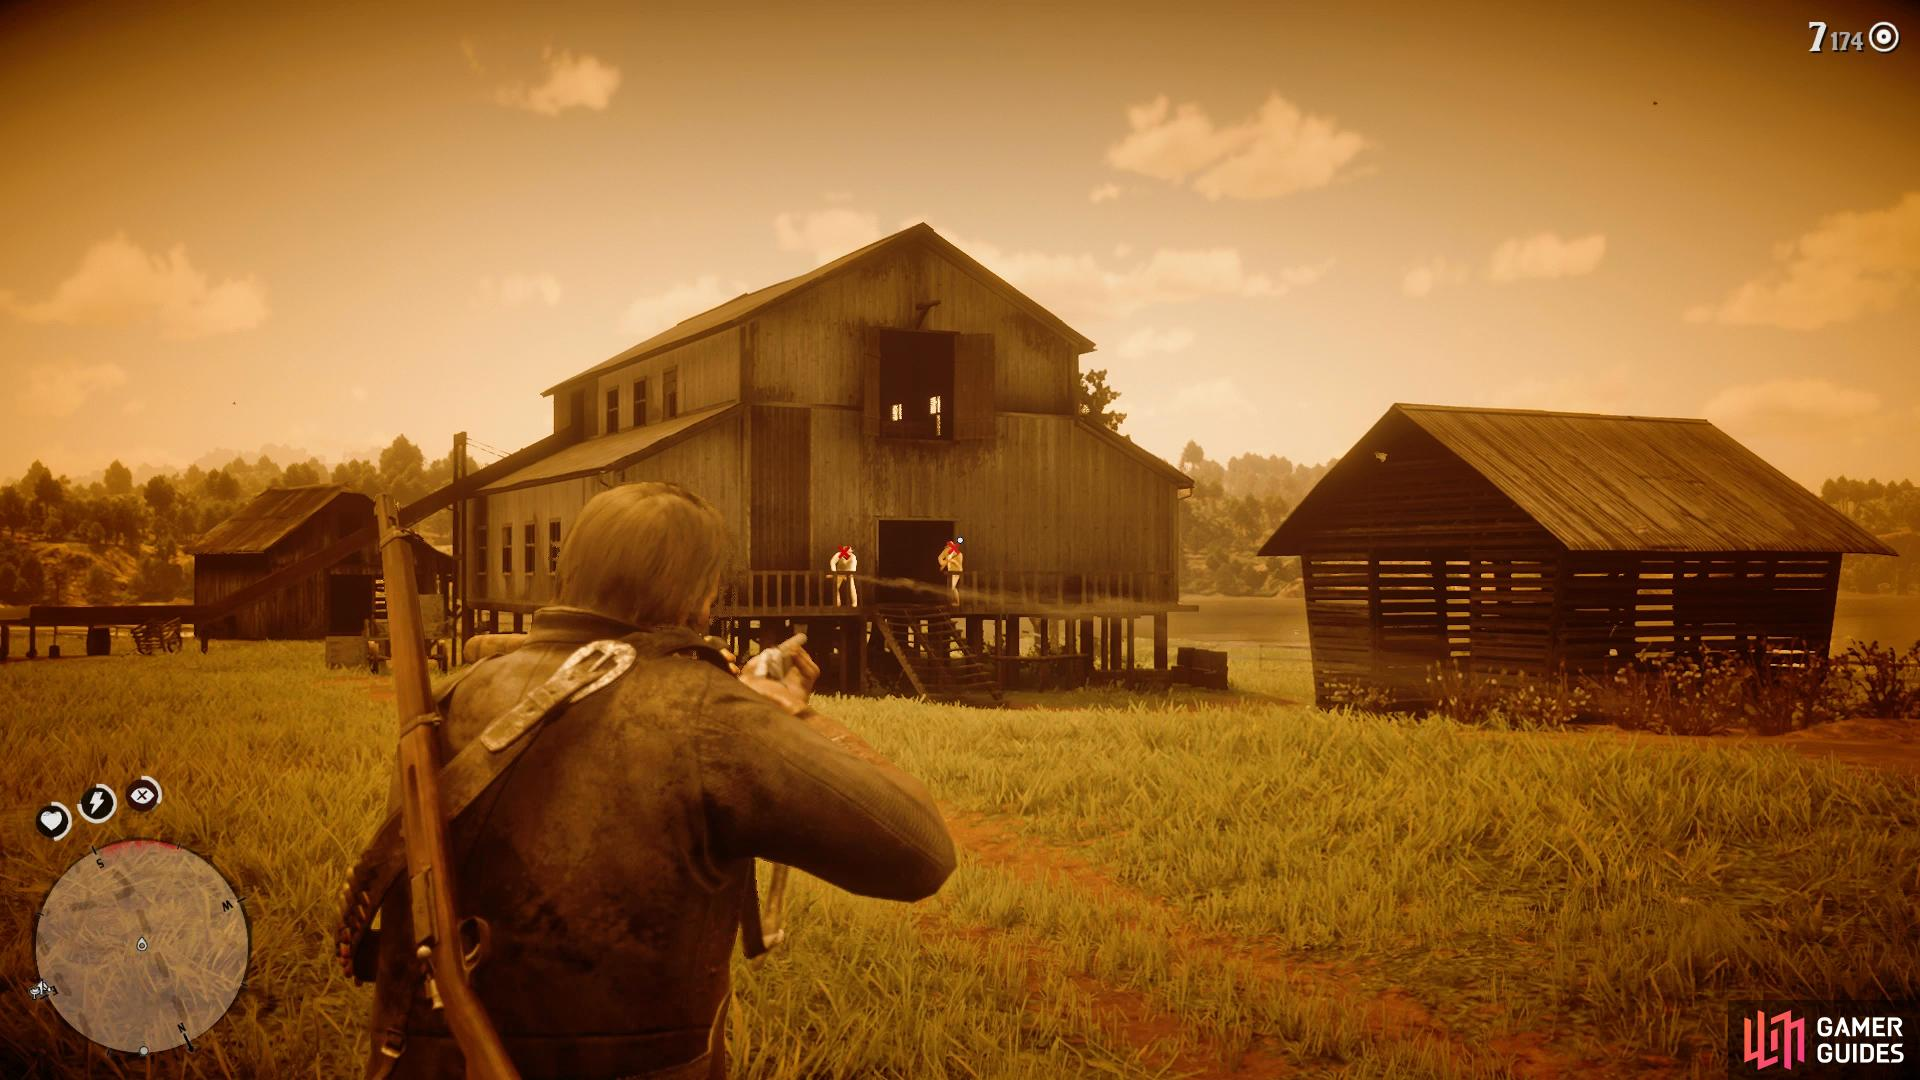 use Dead Eye as you approach the barn to take out the remaining enemies easily.